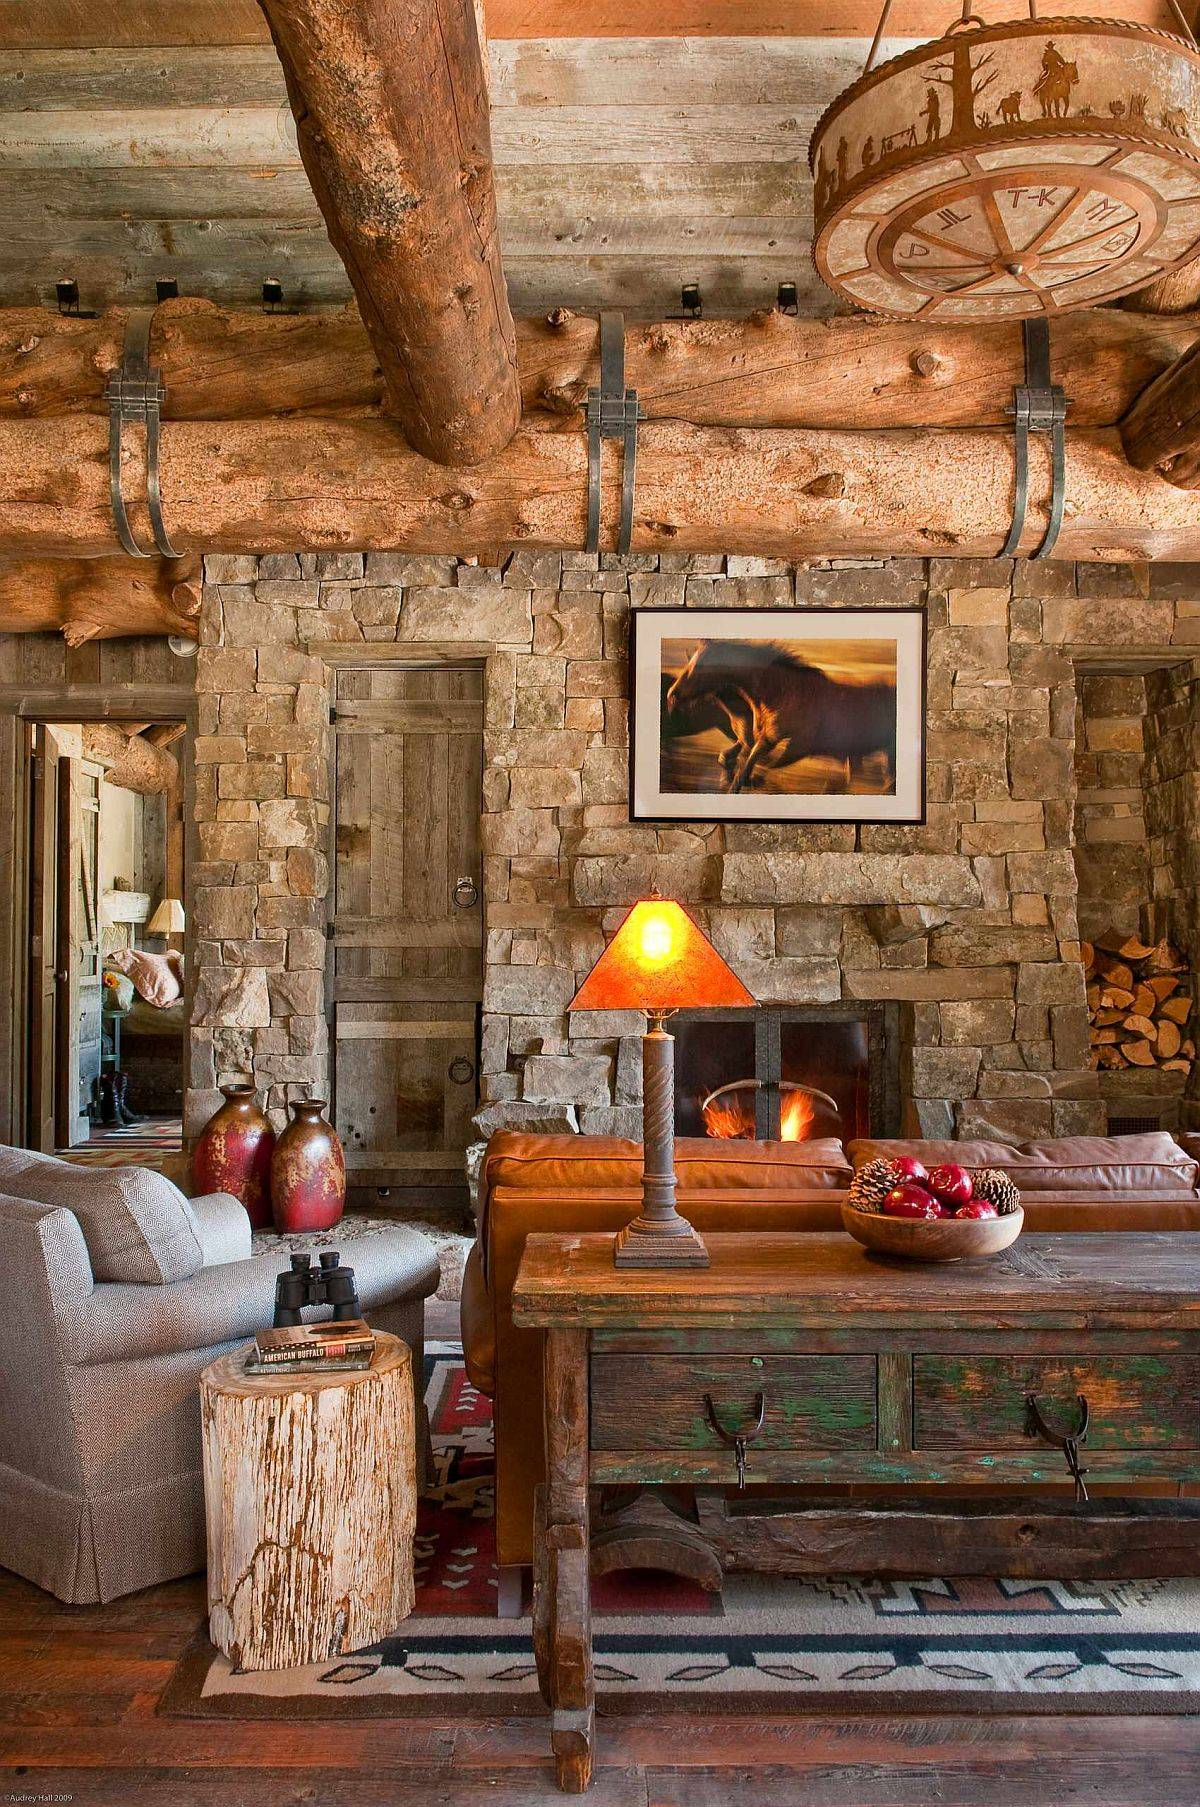 Vintage-furniture-pieces-and-reclaimed-wood-decor-make-a-difference-in-the-rustic-living-space-36108